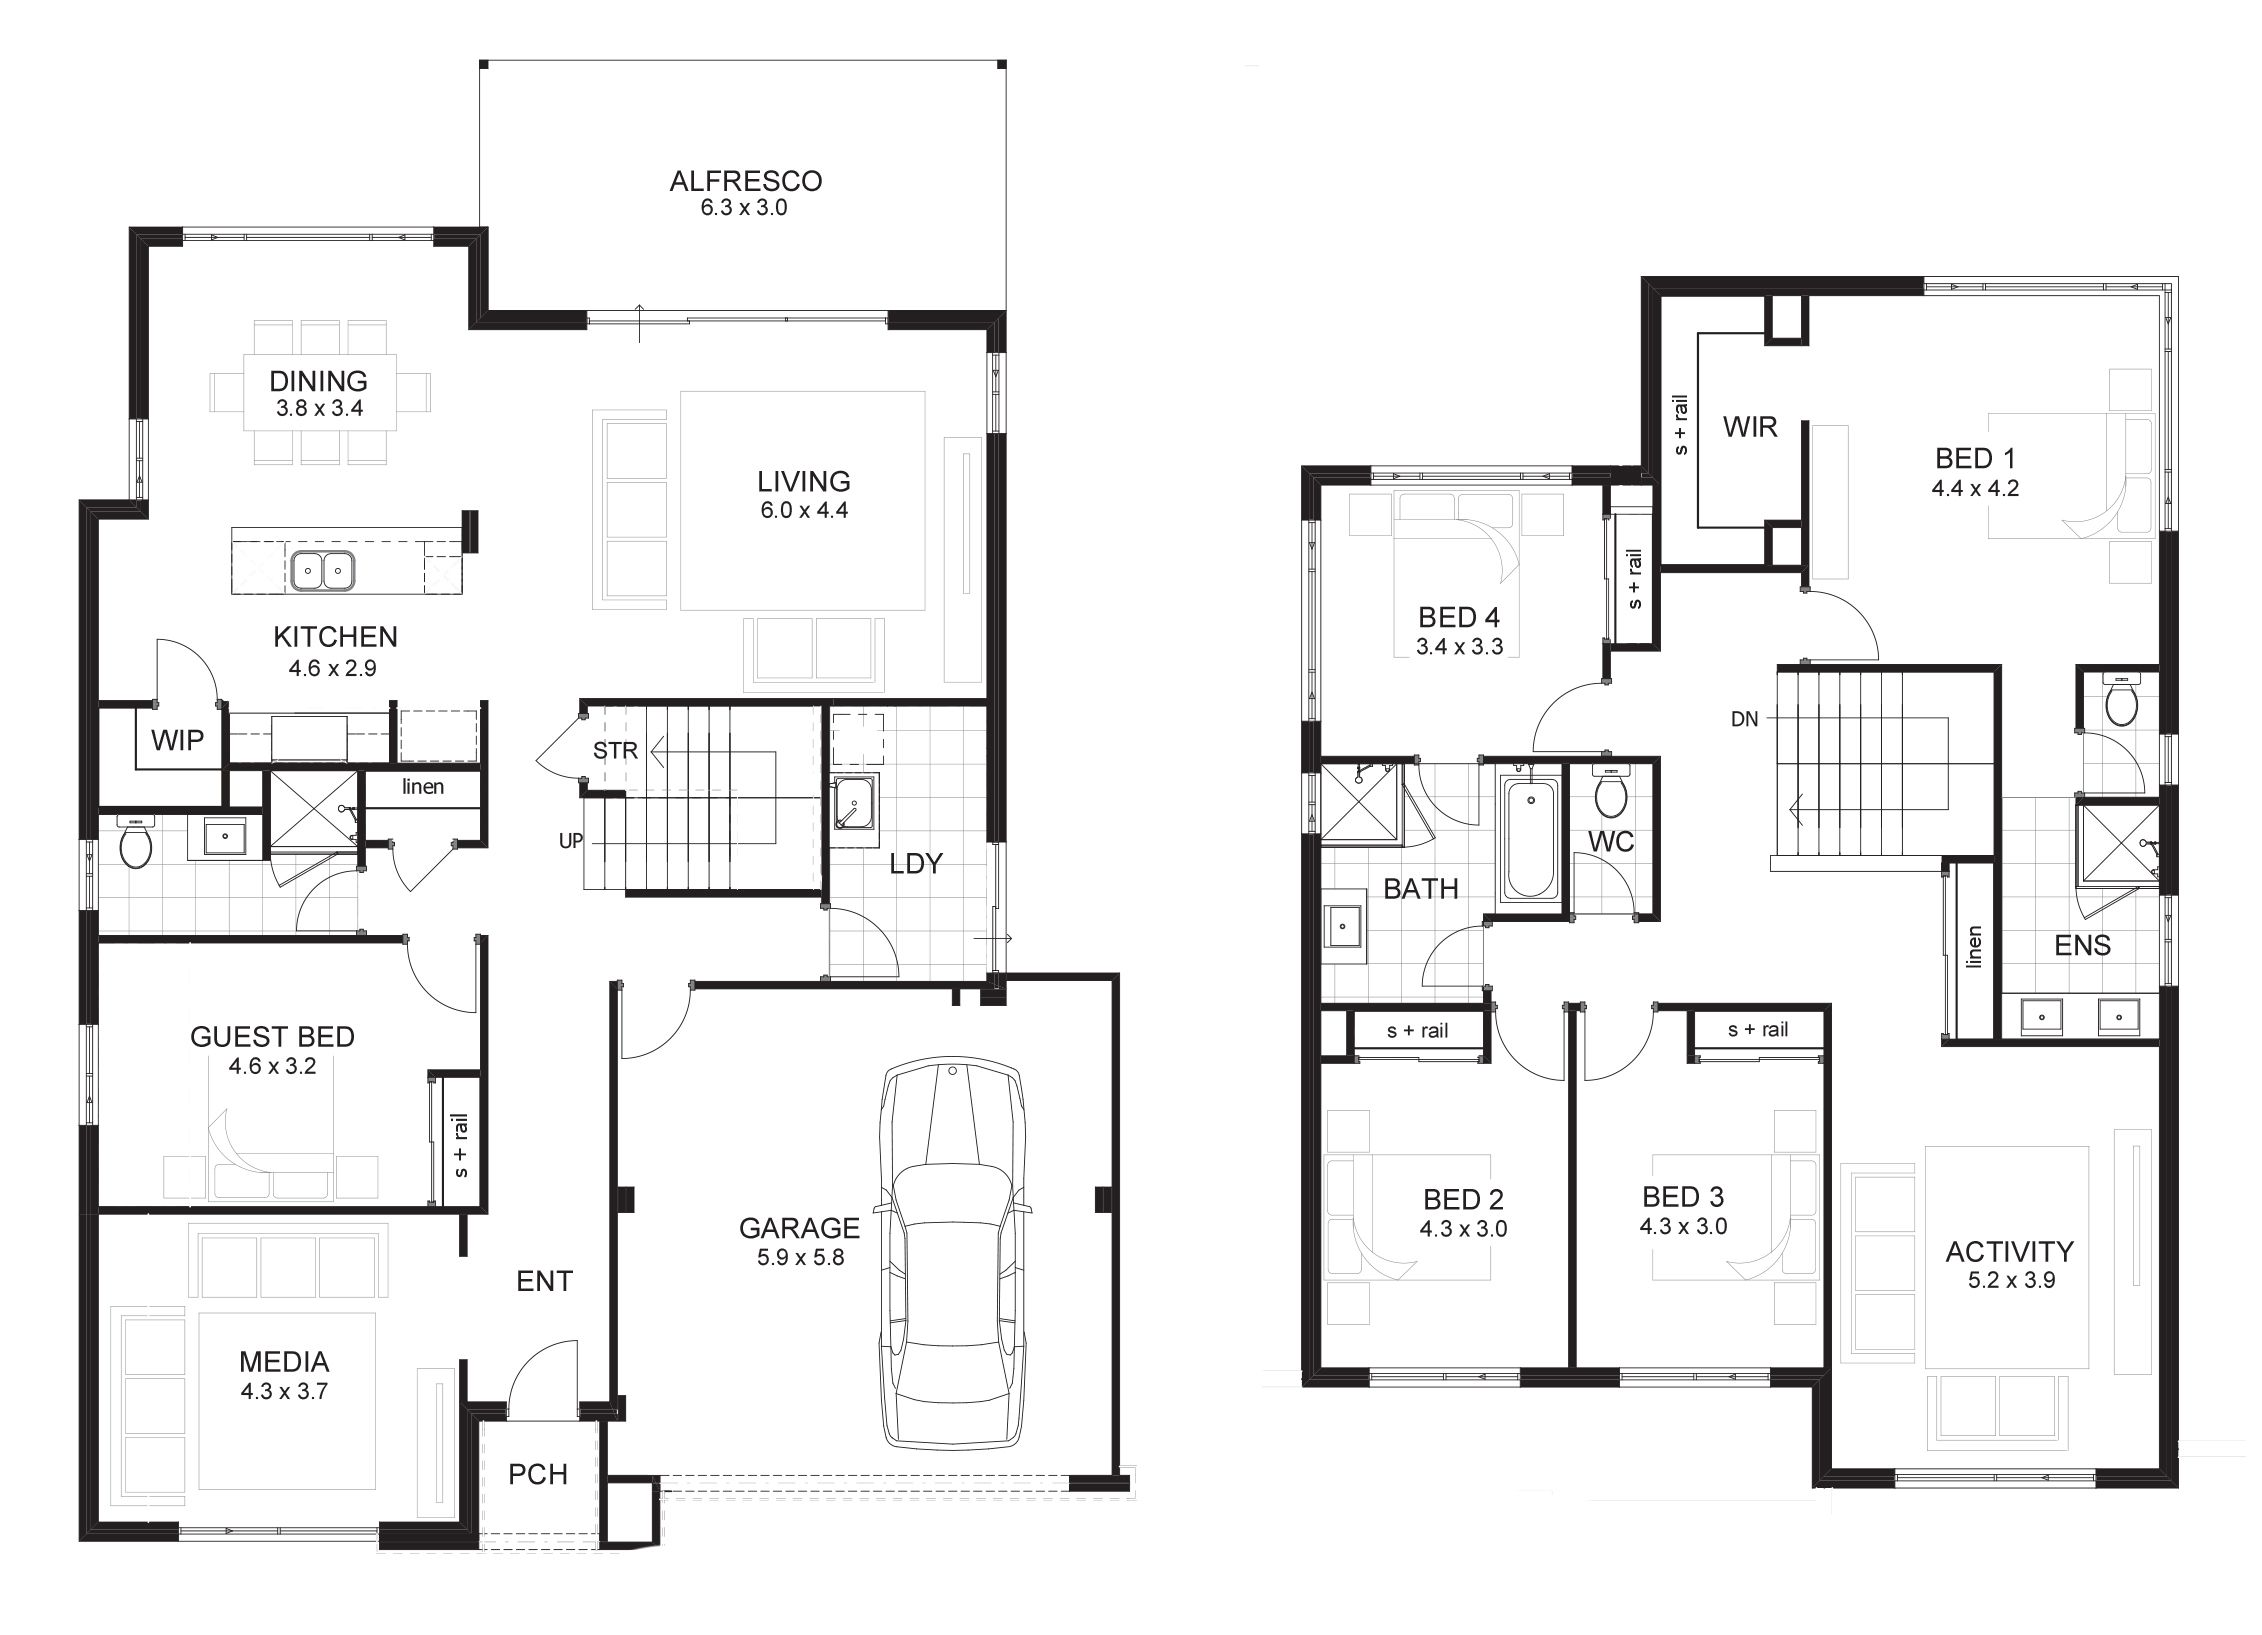 Bedroom House Plans Perth Corepadinfo Pinterest Perth - House designs floor plans